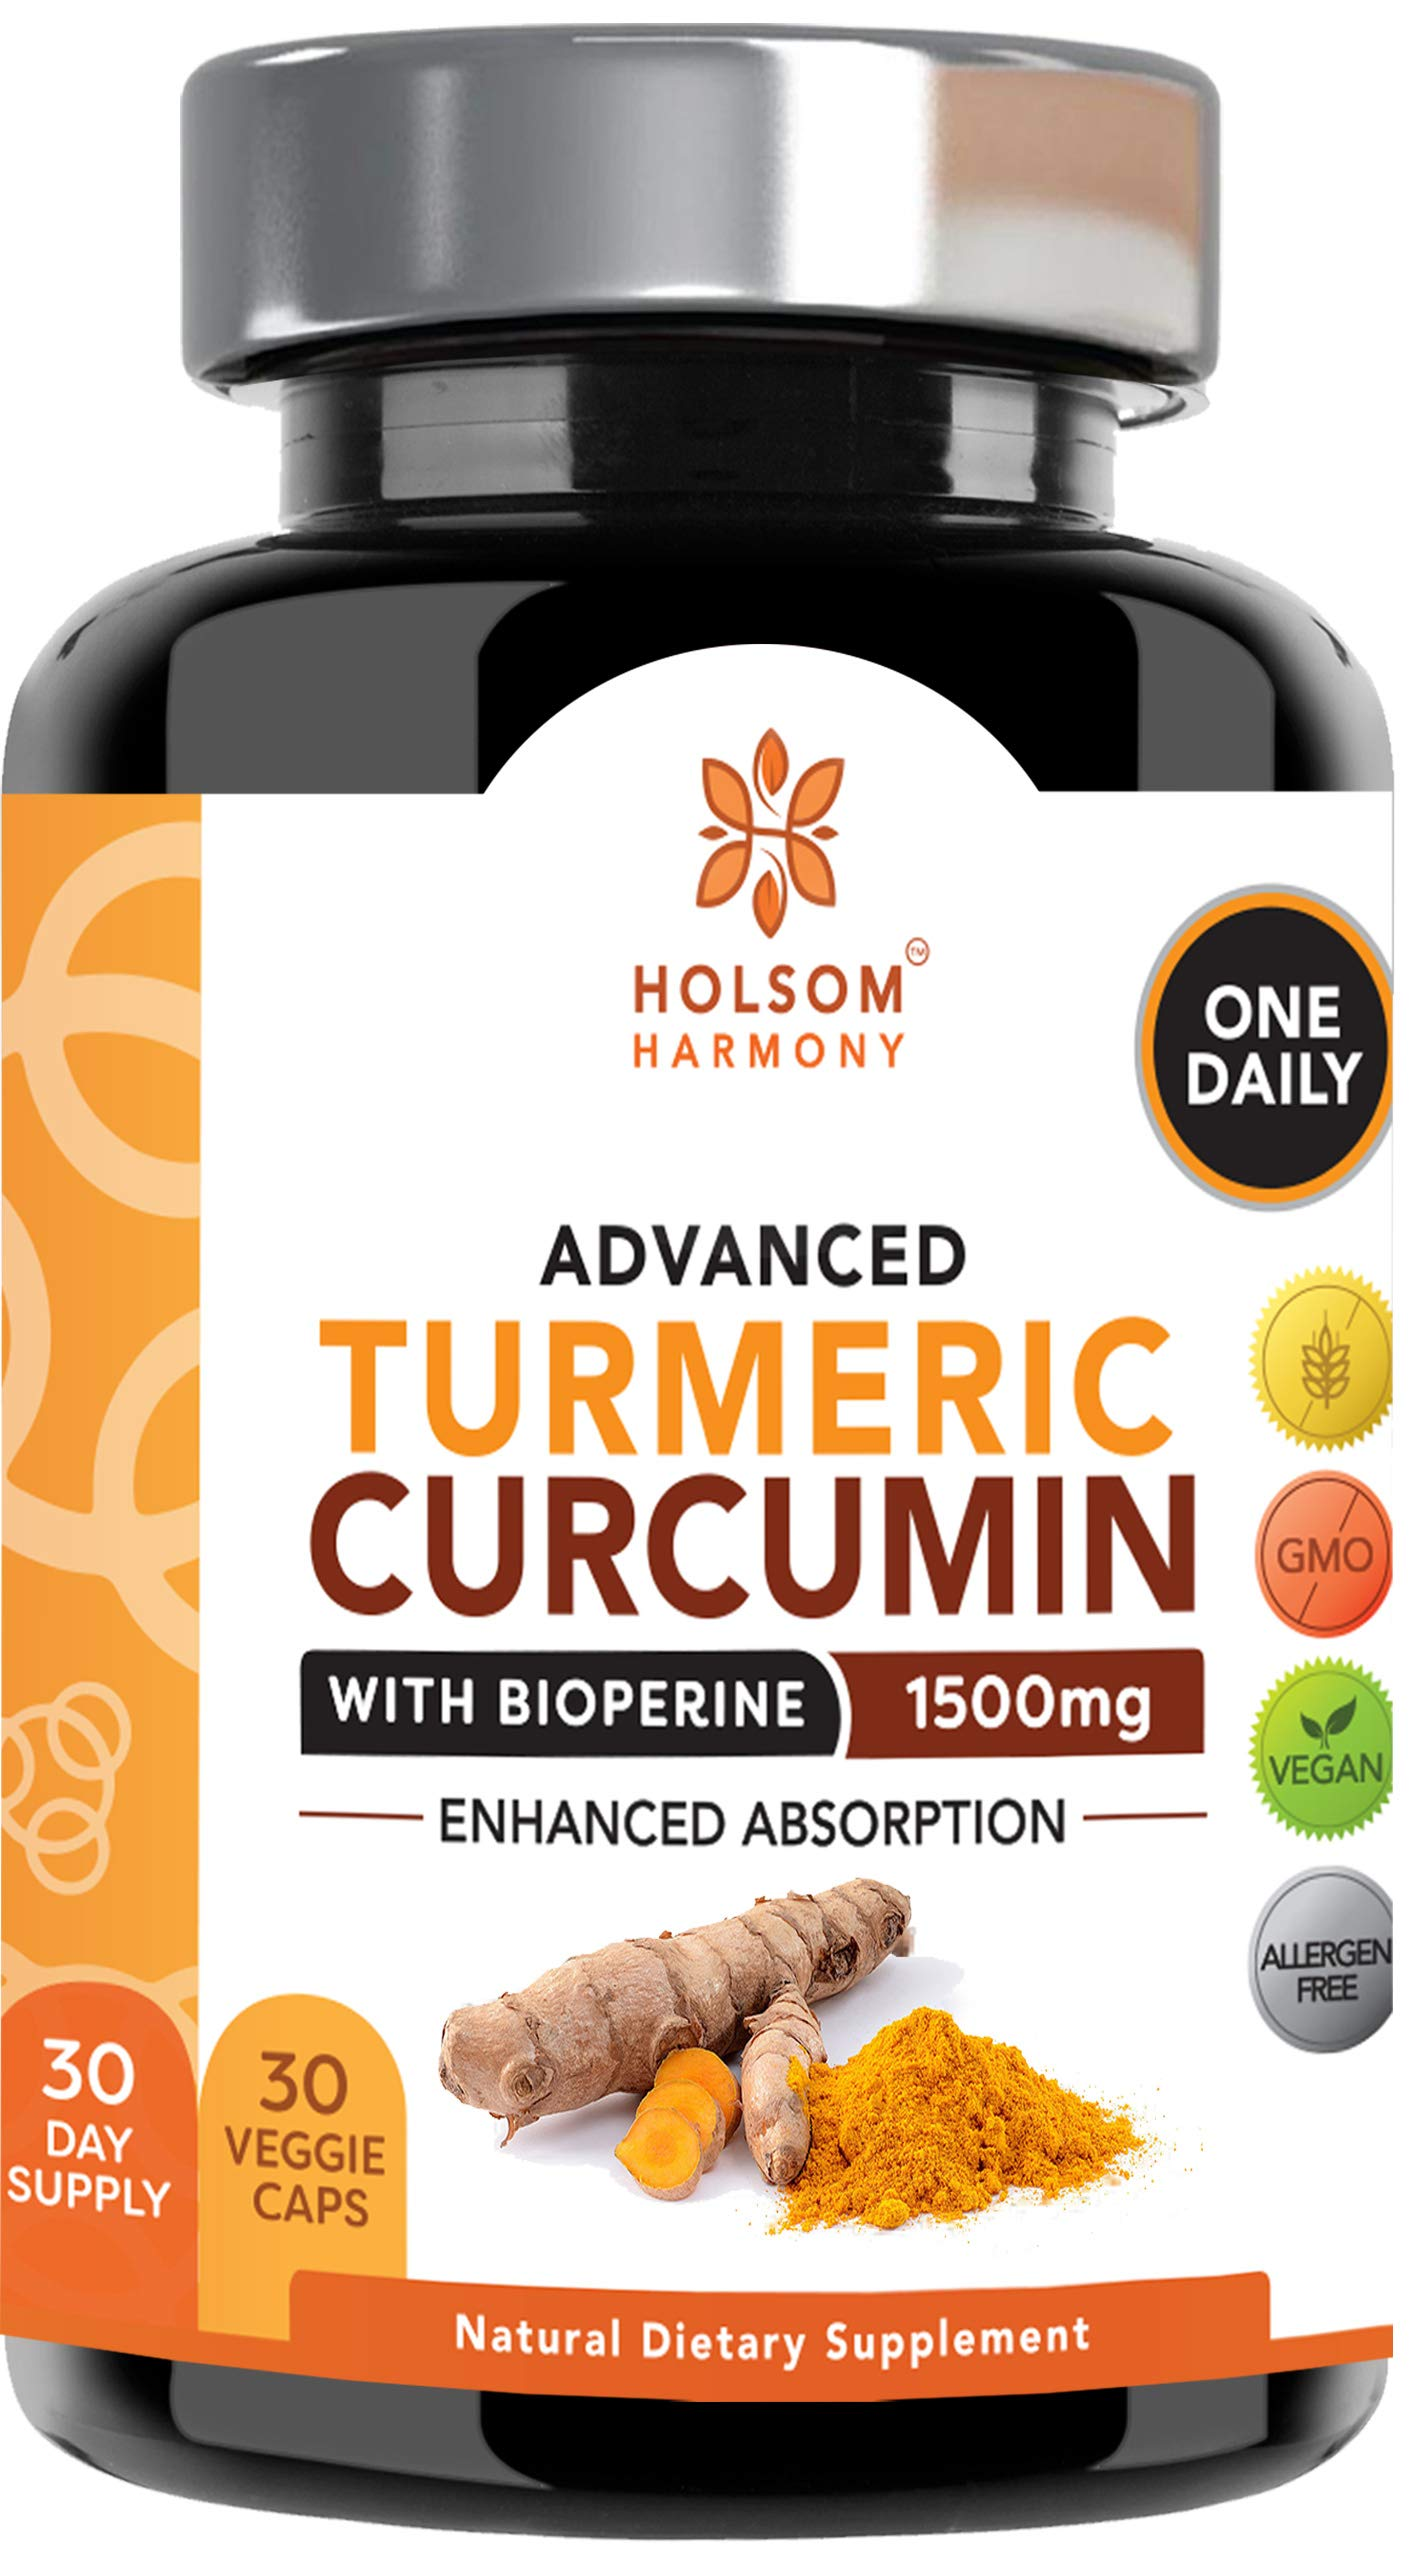 Turmeric Curcumin with Bioperine 1650mg Advanced Formula ONE DAILY, Joint Pain Relief & Anti Inflammatory Supplement with Black Pepper for Best Absorption. Non-GMO, Natural, Made in USA,180 pills